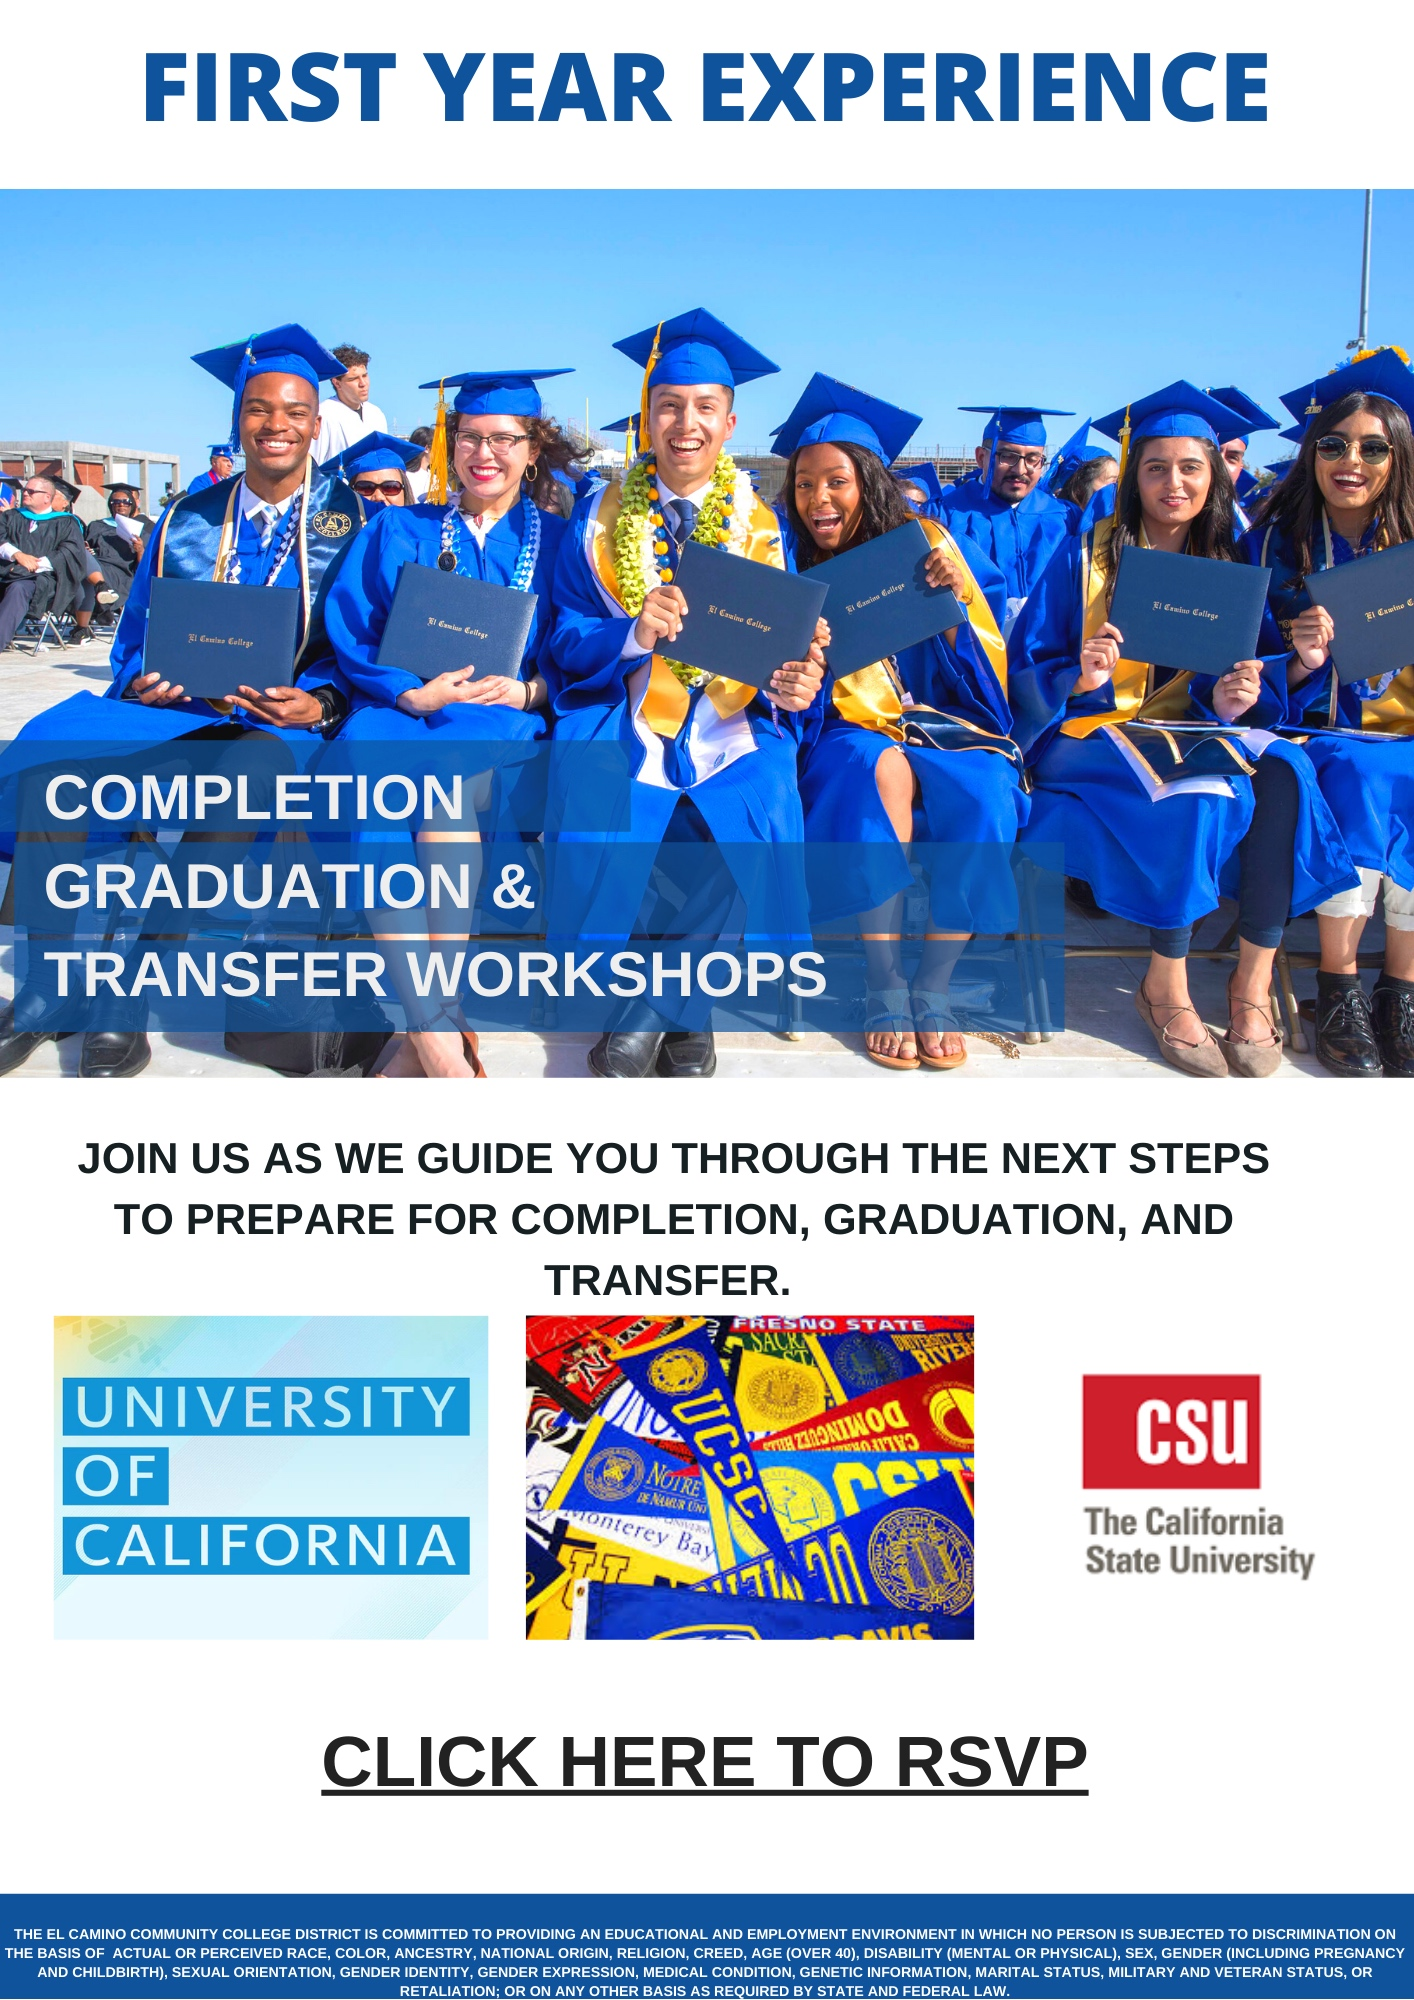 Completion, Graduation, Transfer Workshop